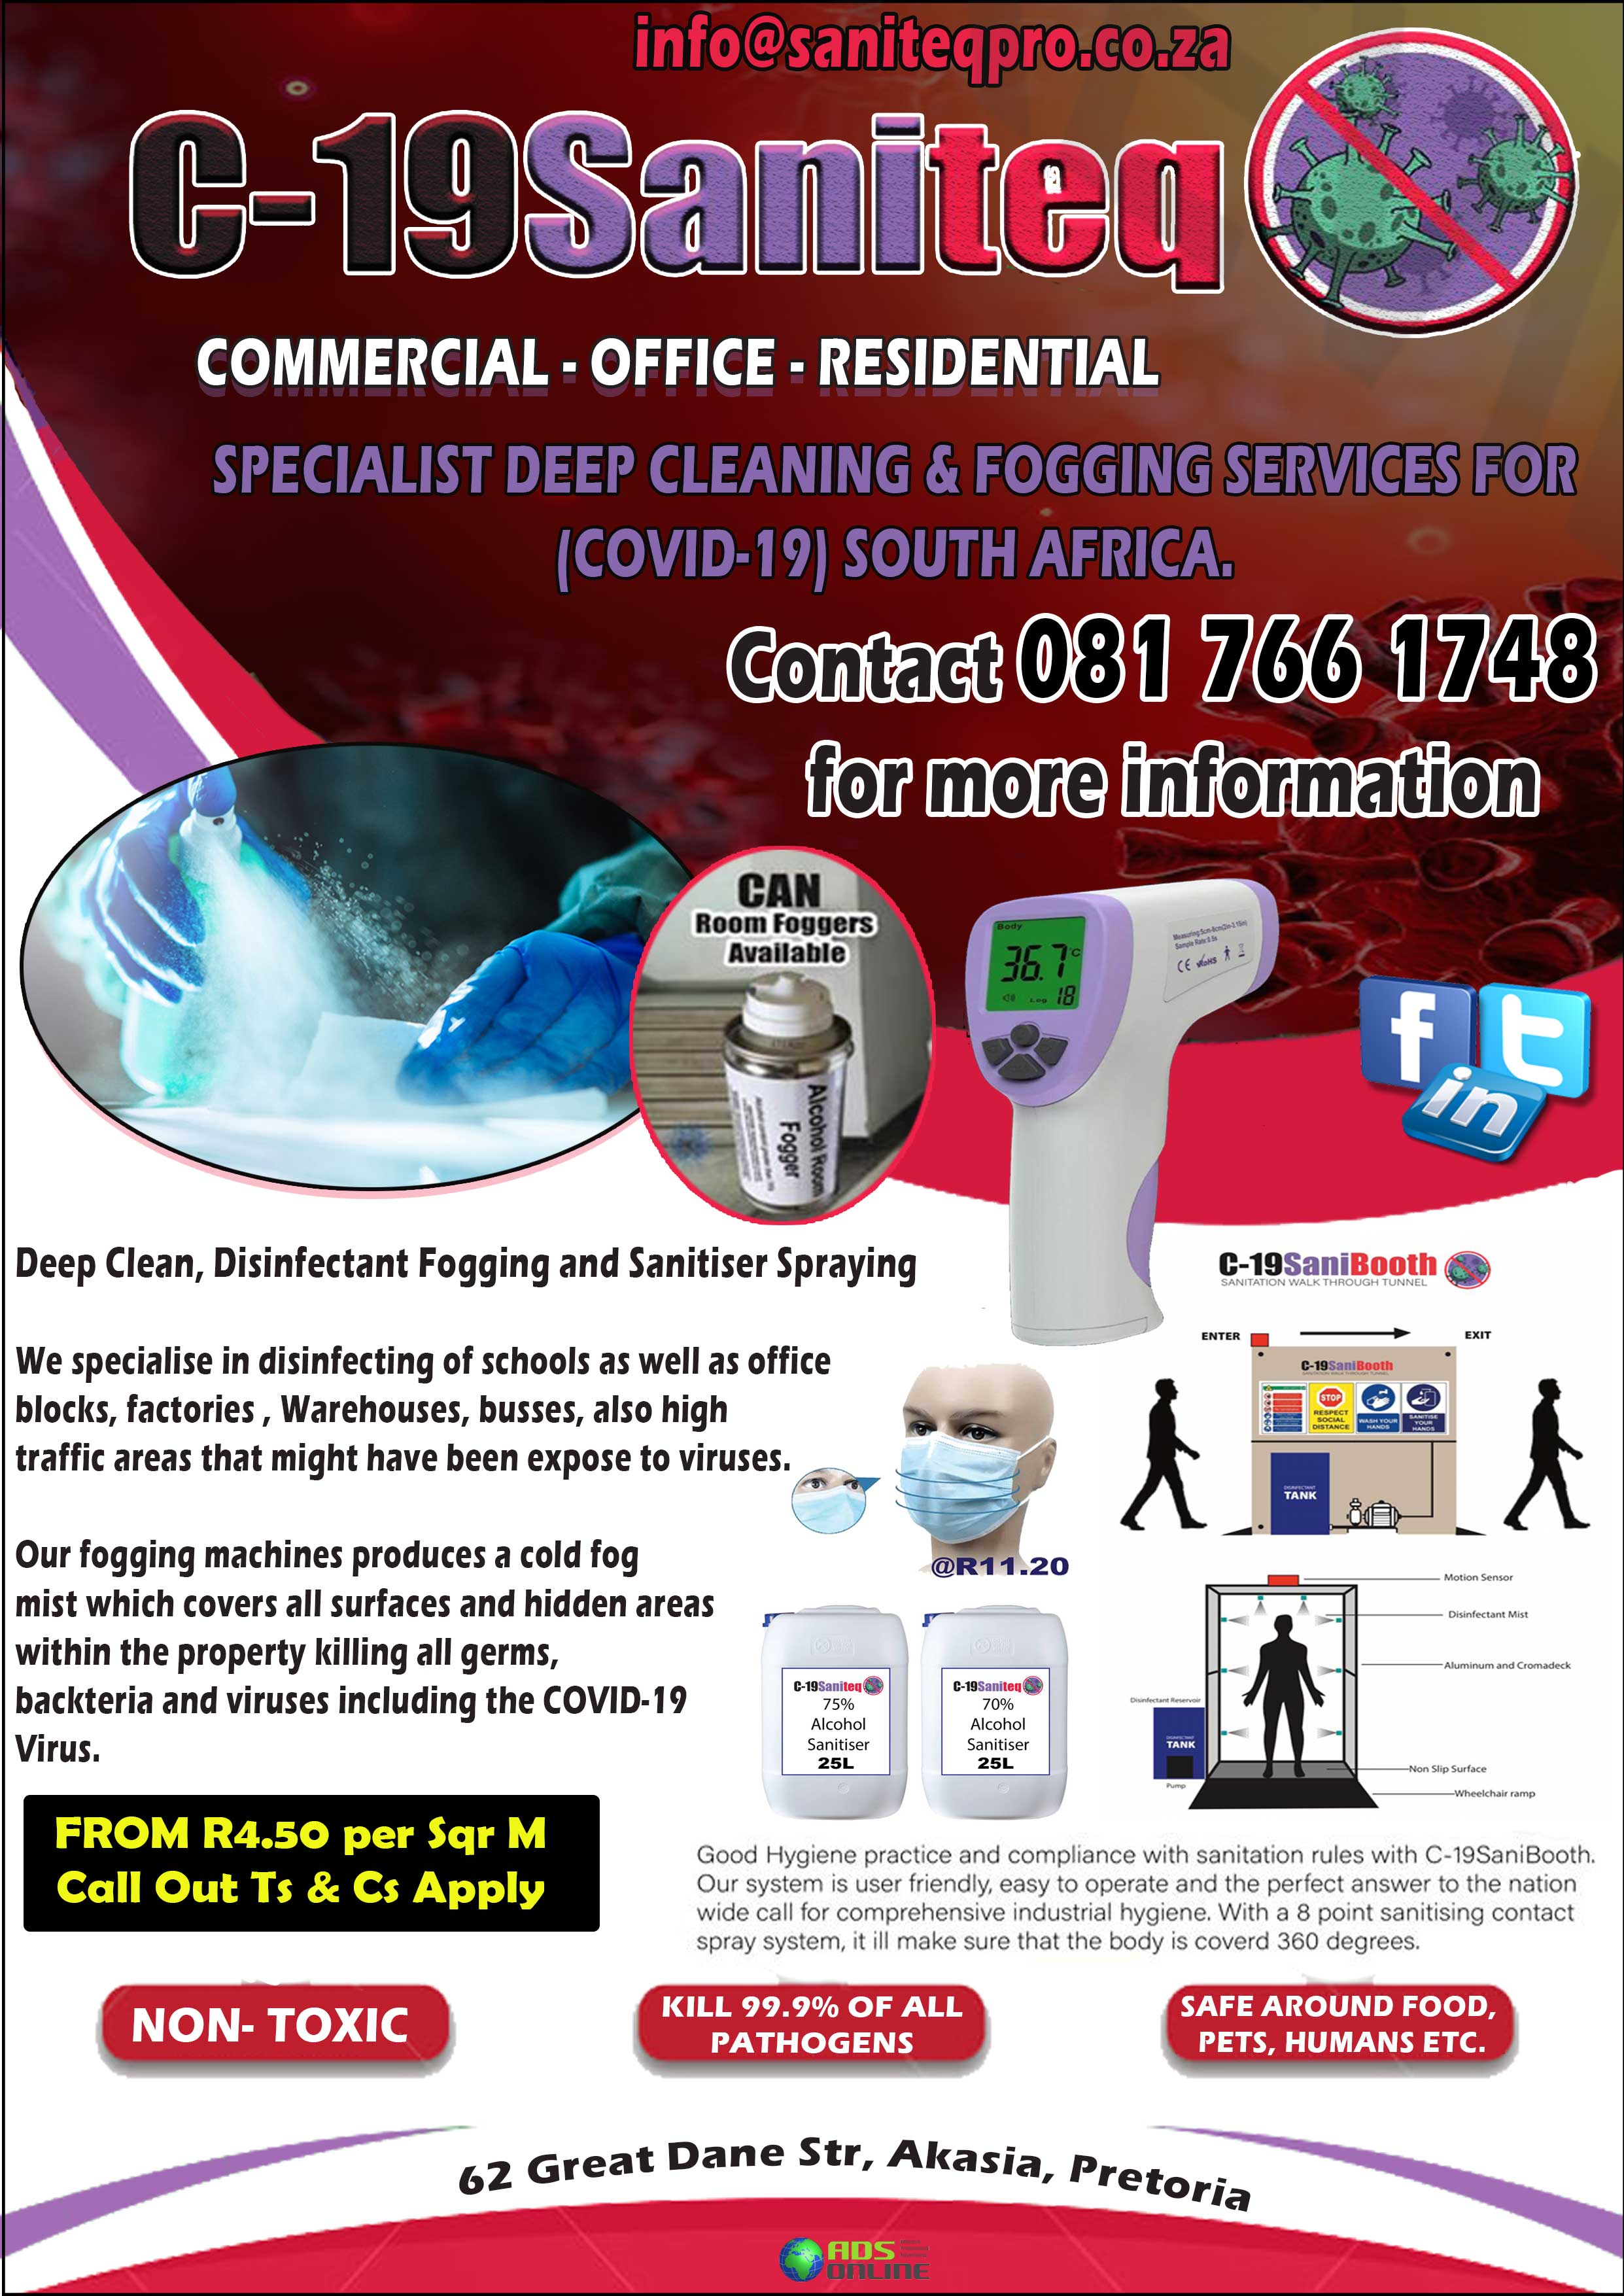 C-19 Saniteq – SPECIALIST DEEP CLEANING & FOGGING SERVICES FOR (COVID-19) SOUTH AFRICA. | Pretoria, Gauteng